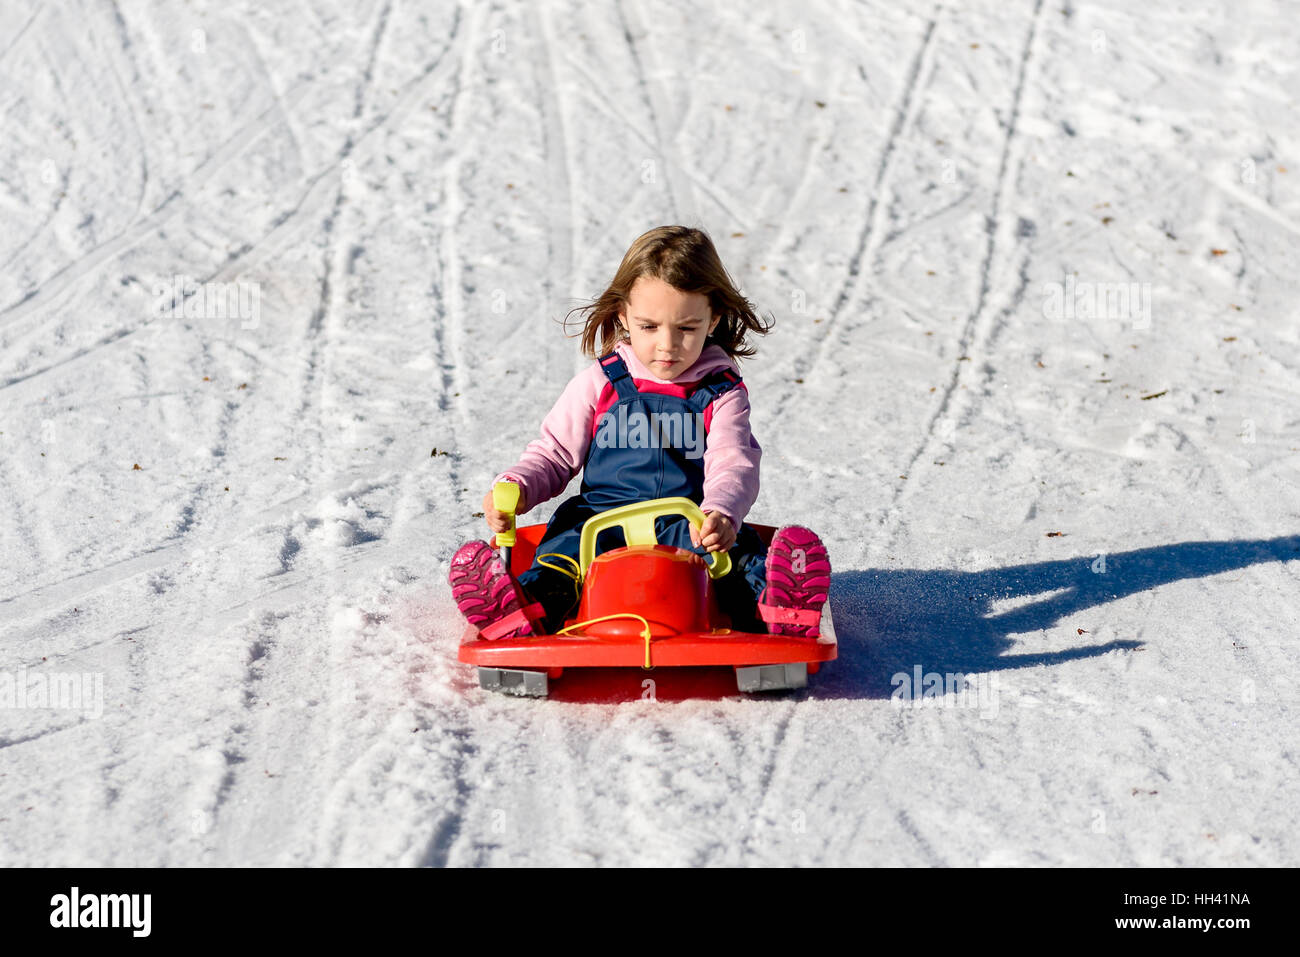 Little girl sliding with bob in the snow in wintertime. Winter vacation in the mountains with happiness concept. - Stock Image